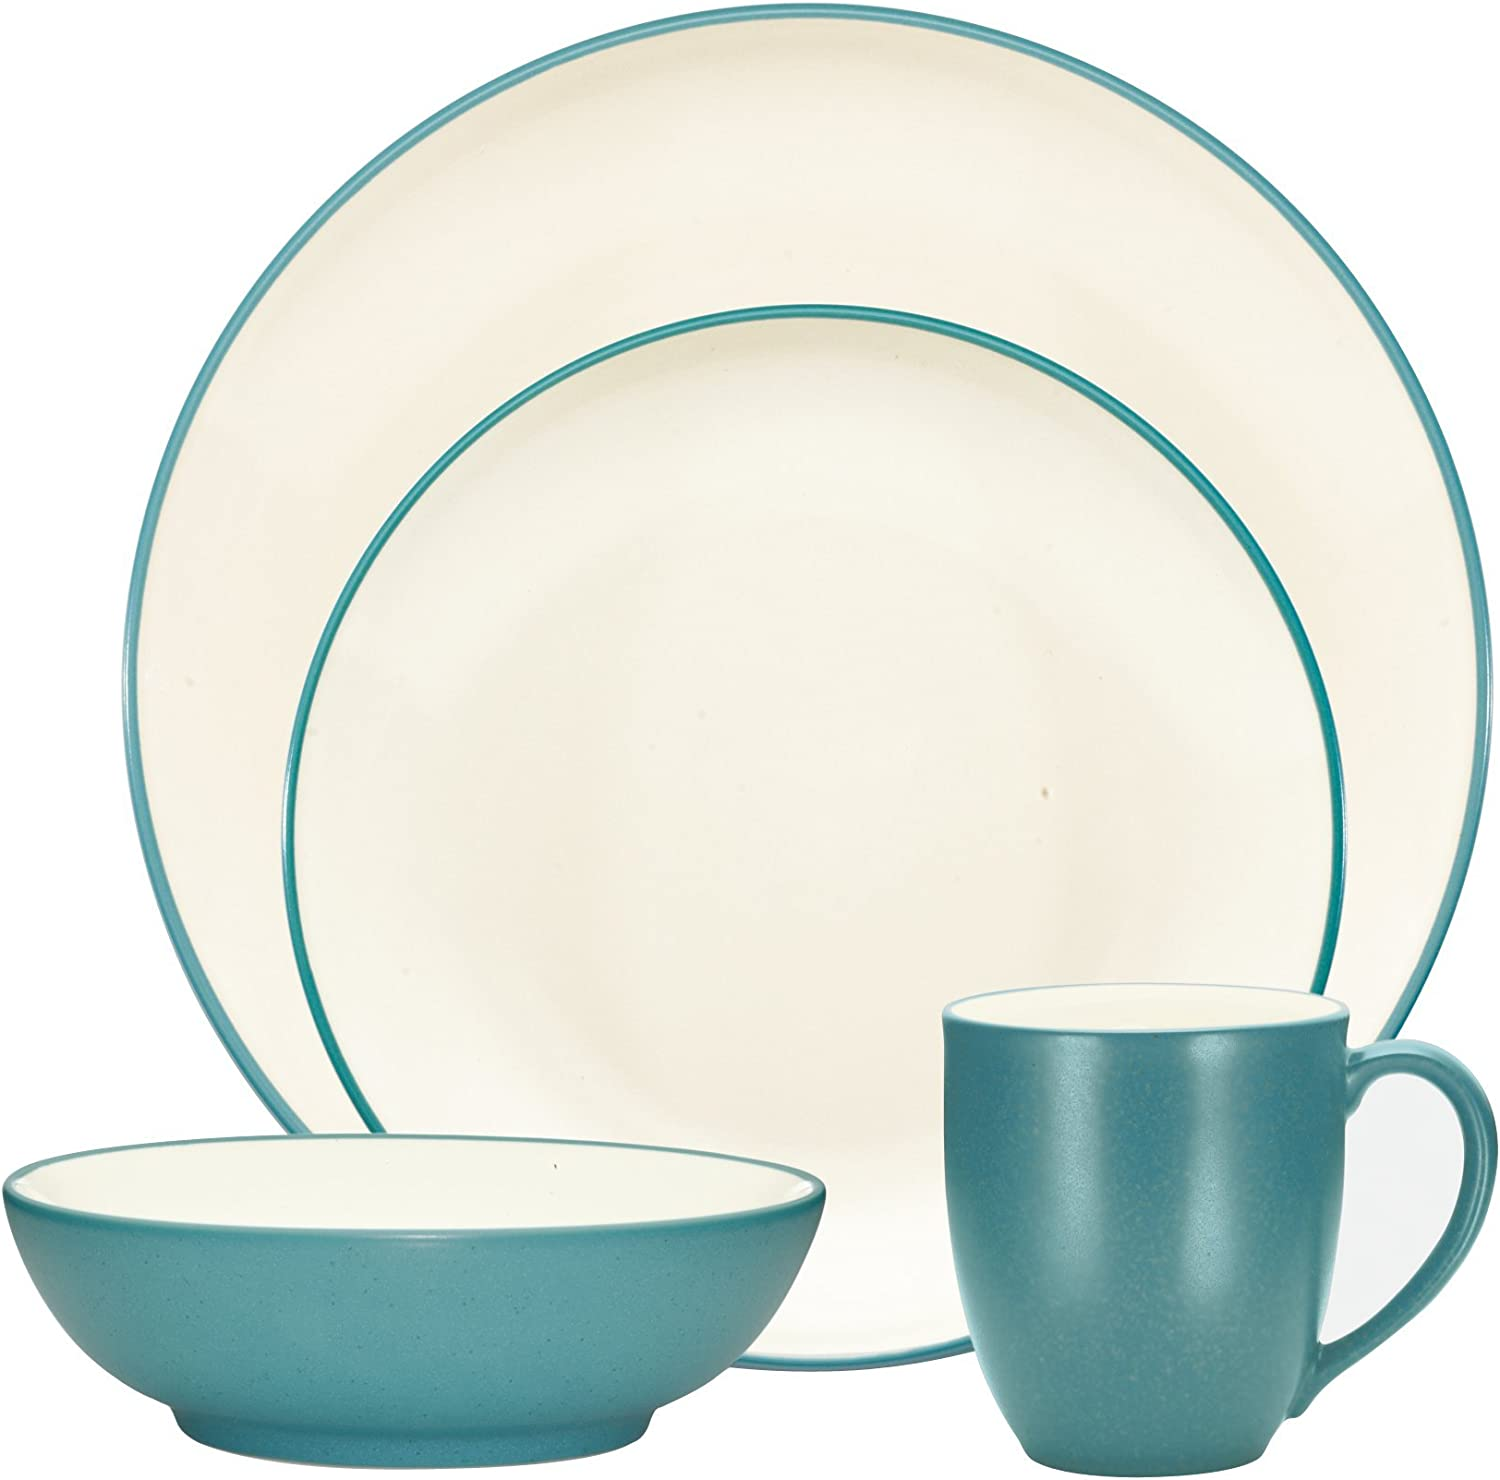 Noritake colorwave Turquoise 4-Piece Place Setting, Coupe Shape